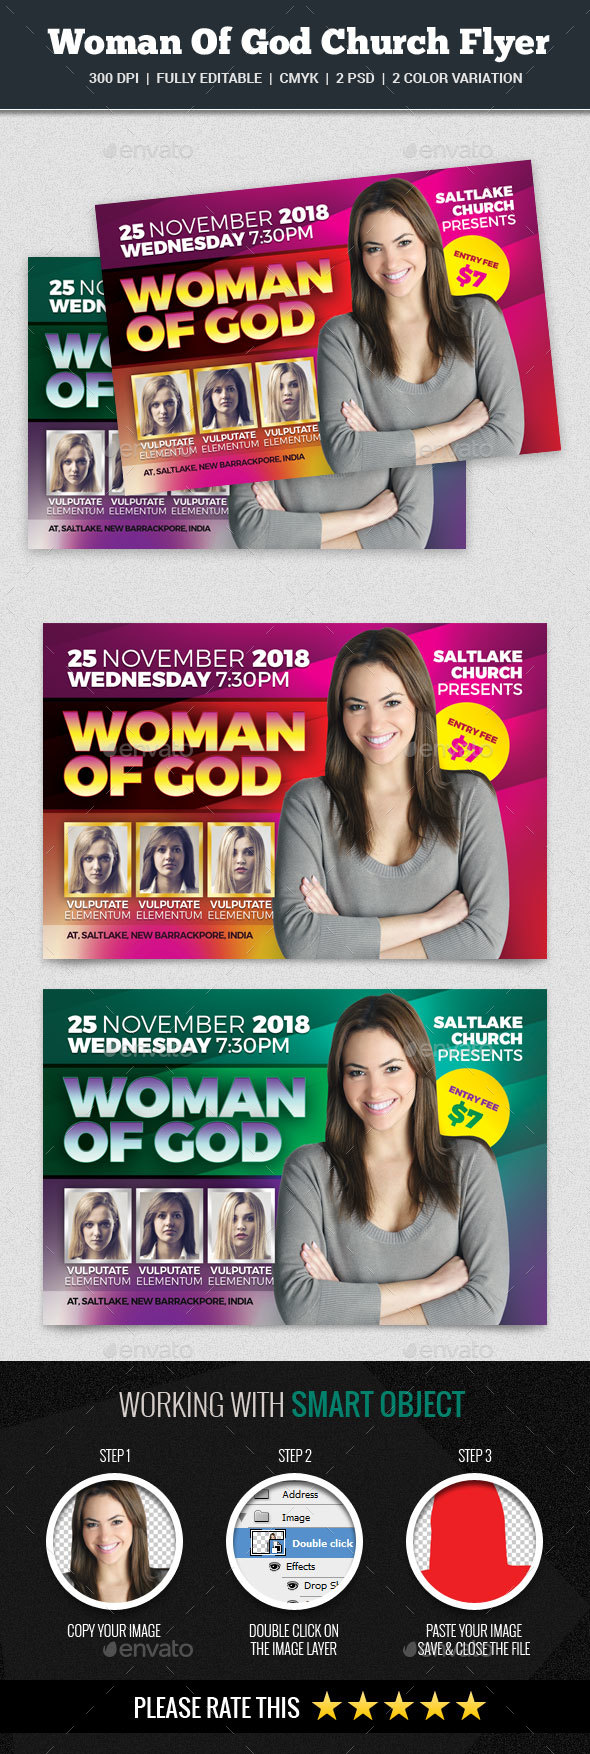 Woman Of God Church Flyer - Church Flyers